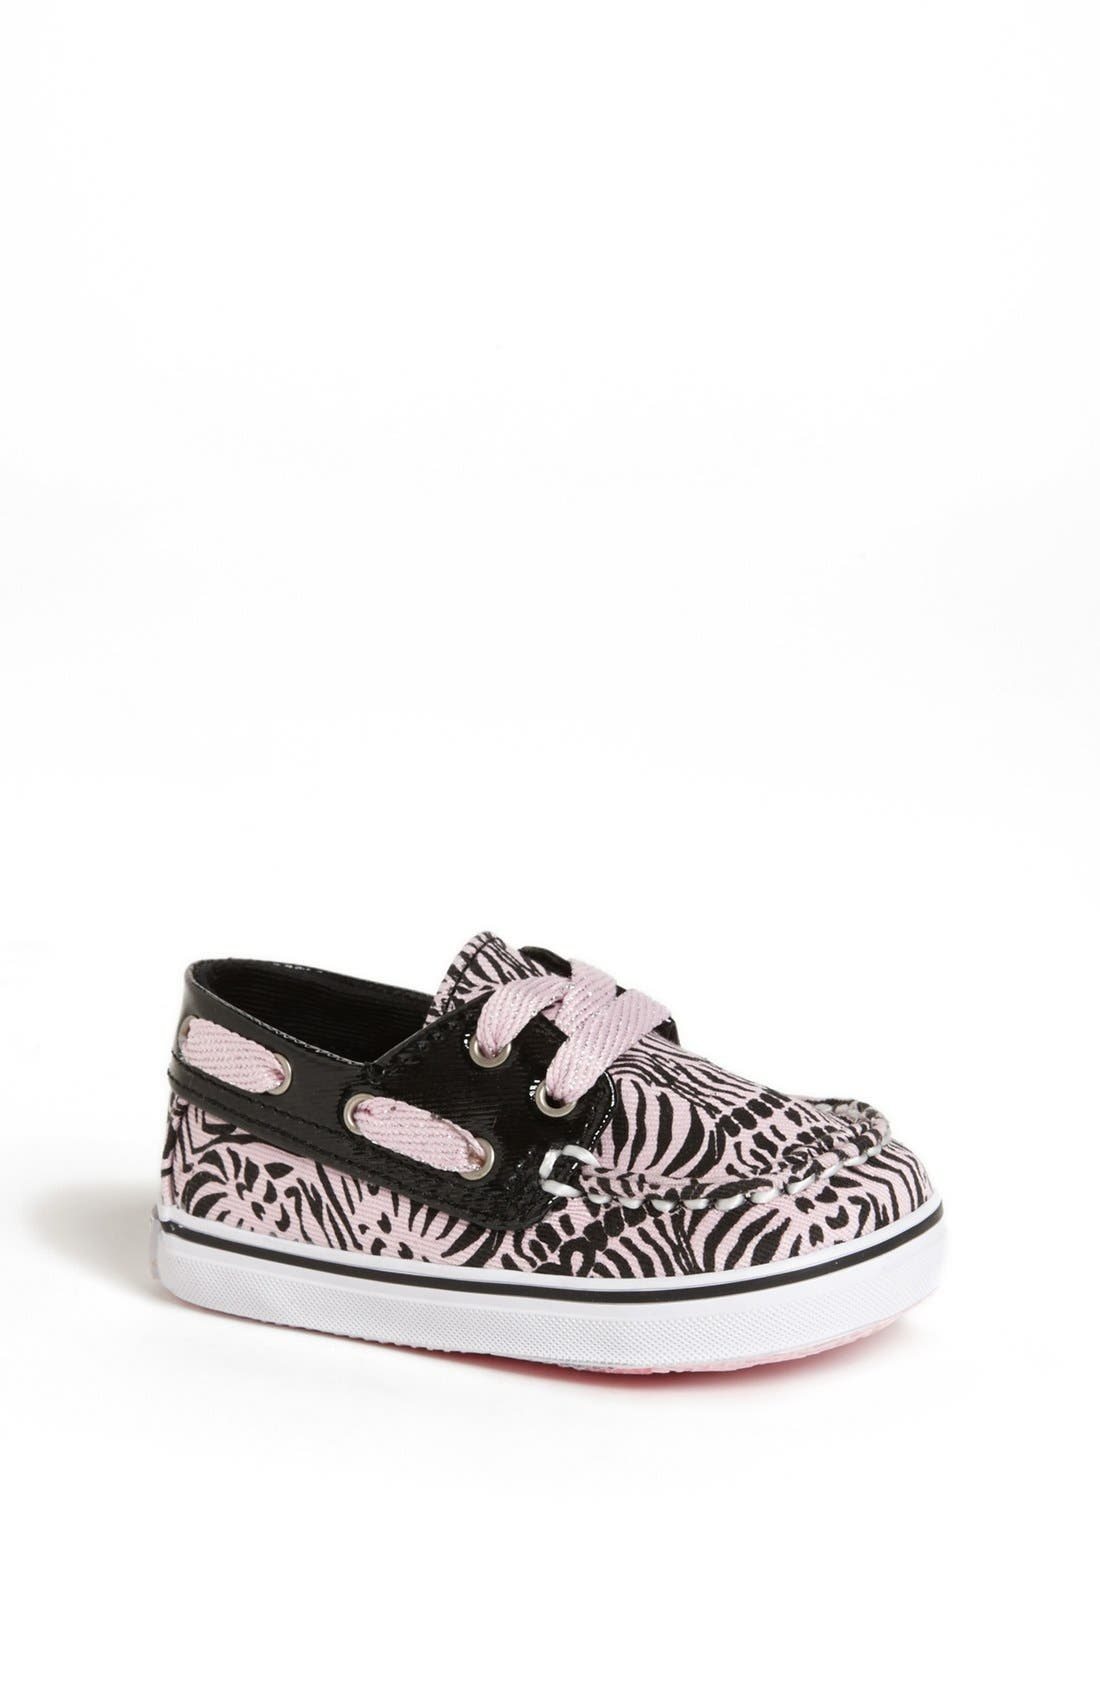 Alternate Image 1 Selected - Sperry Top-Sider®  Kids 'Bahama' Crib Shoe (Baby)